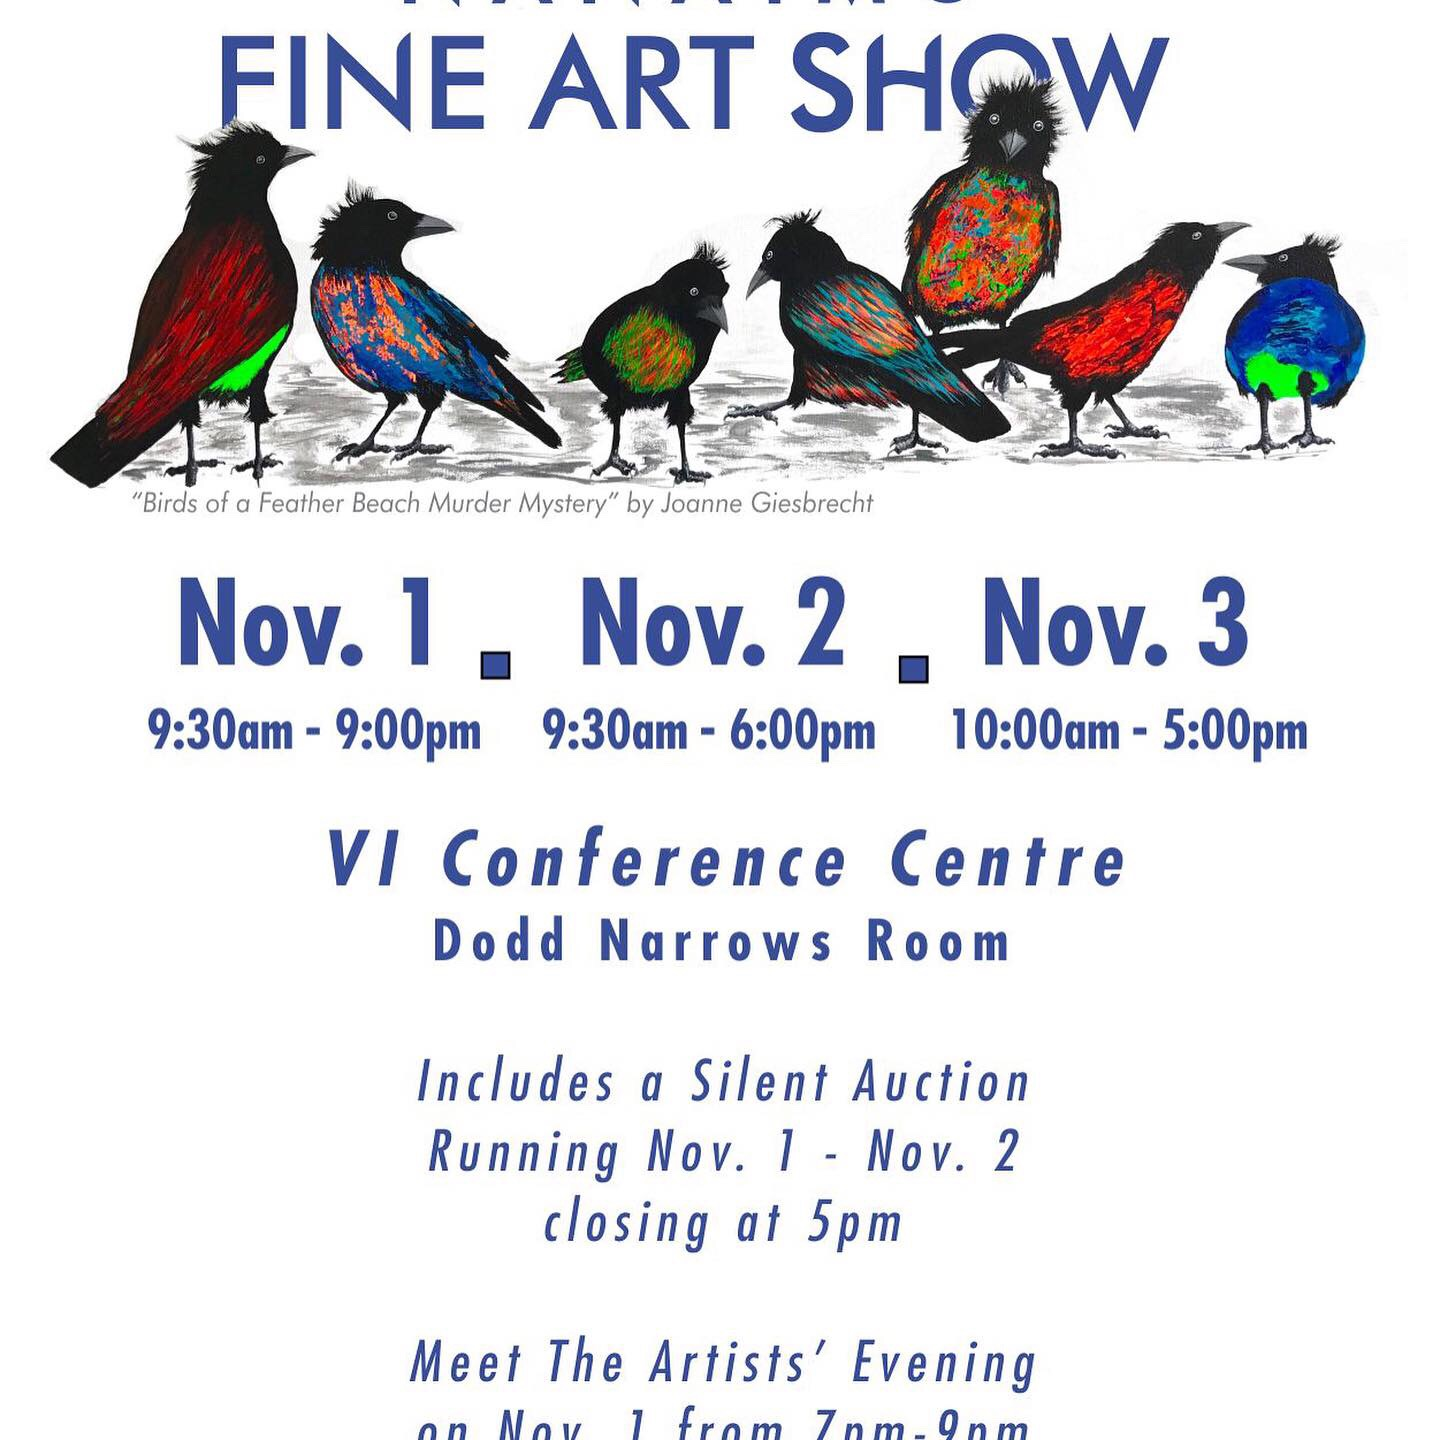 Federation of Canadian Artist Nanaimo Chapter show